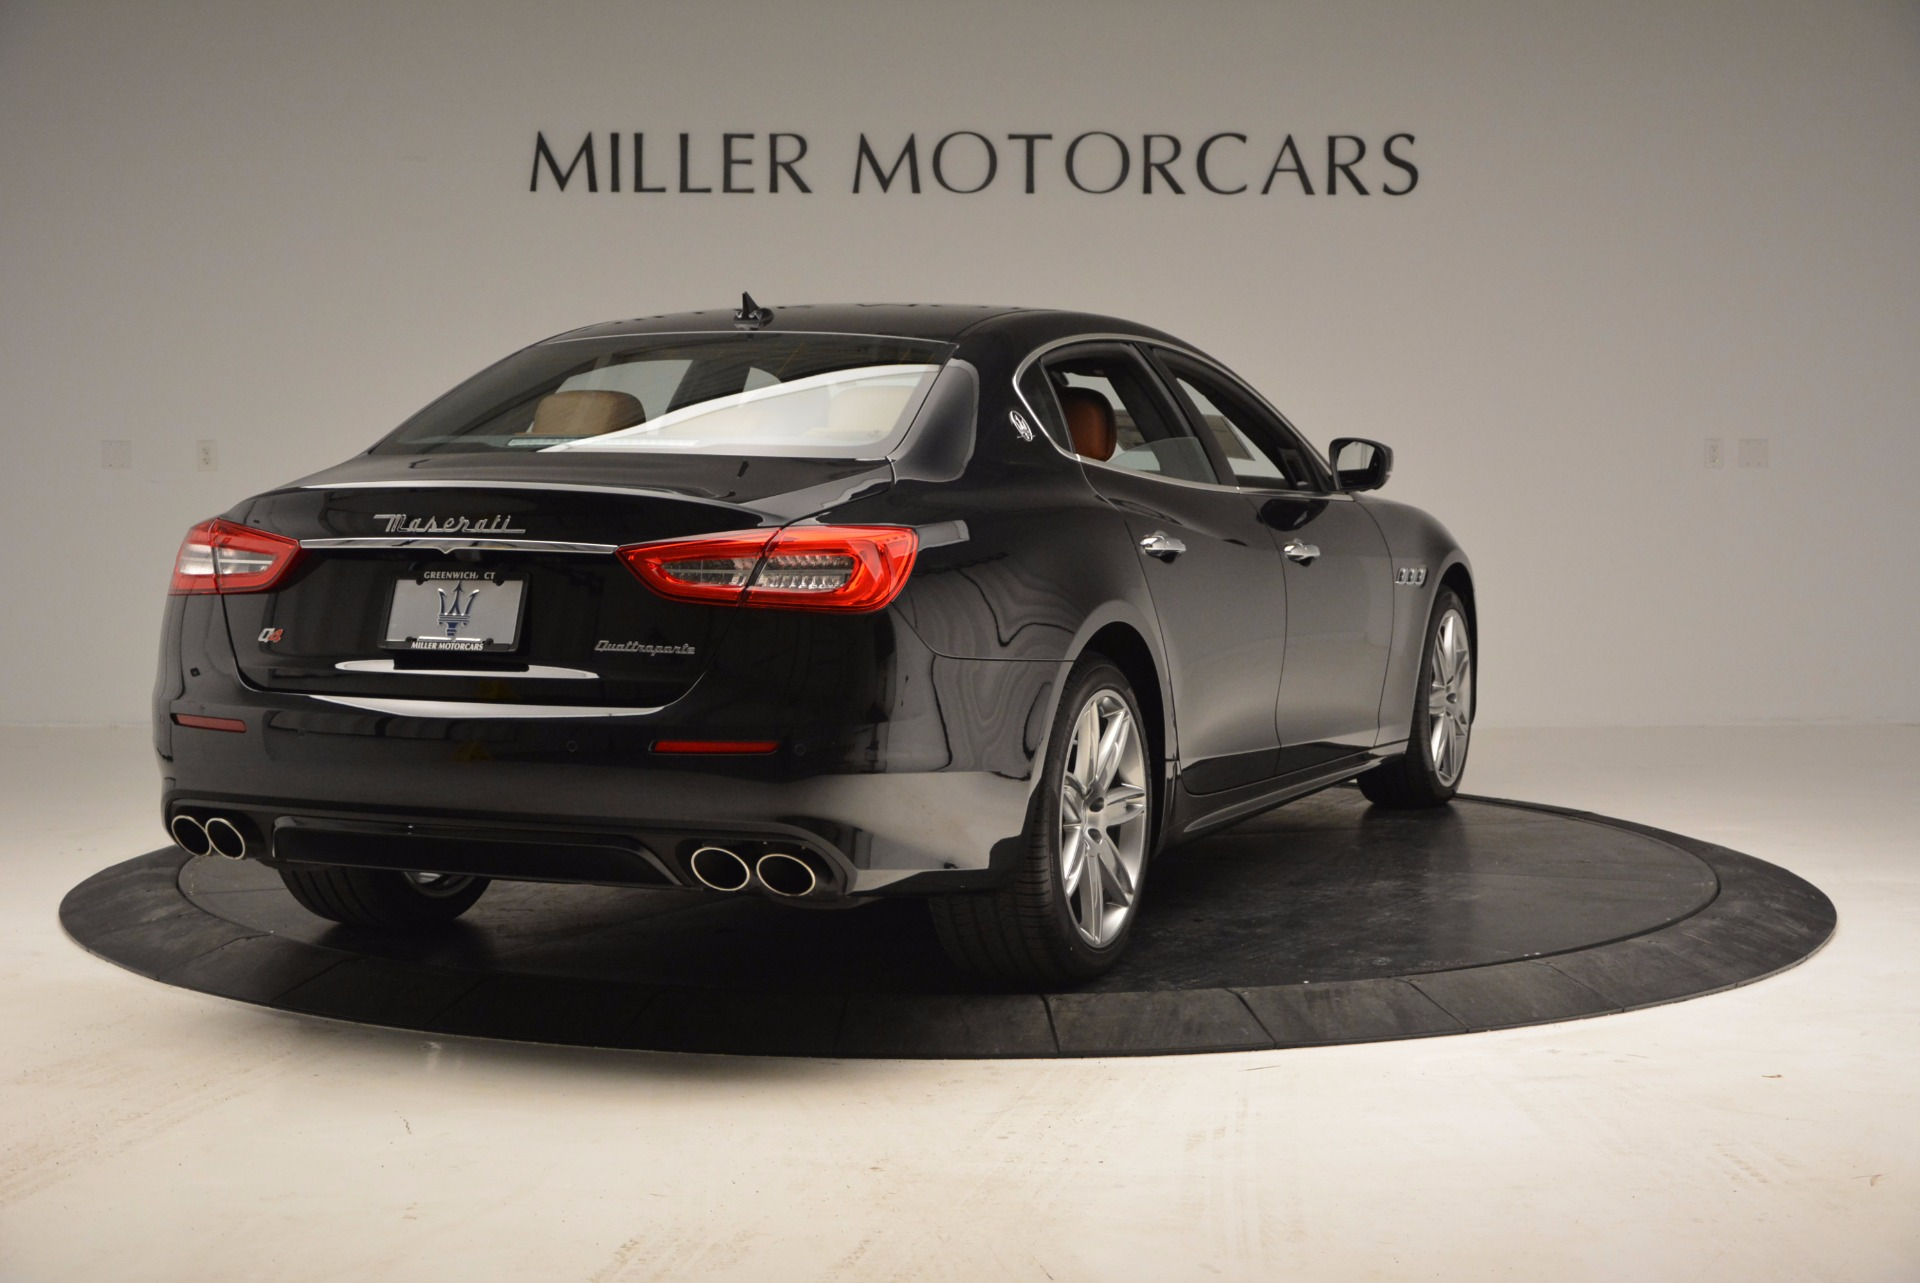 New 2017 Maserati Quattroporte S Q4 GranLusso For Sale In Greenwich, CT 716_p7